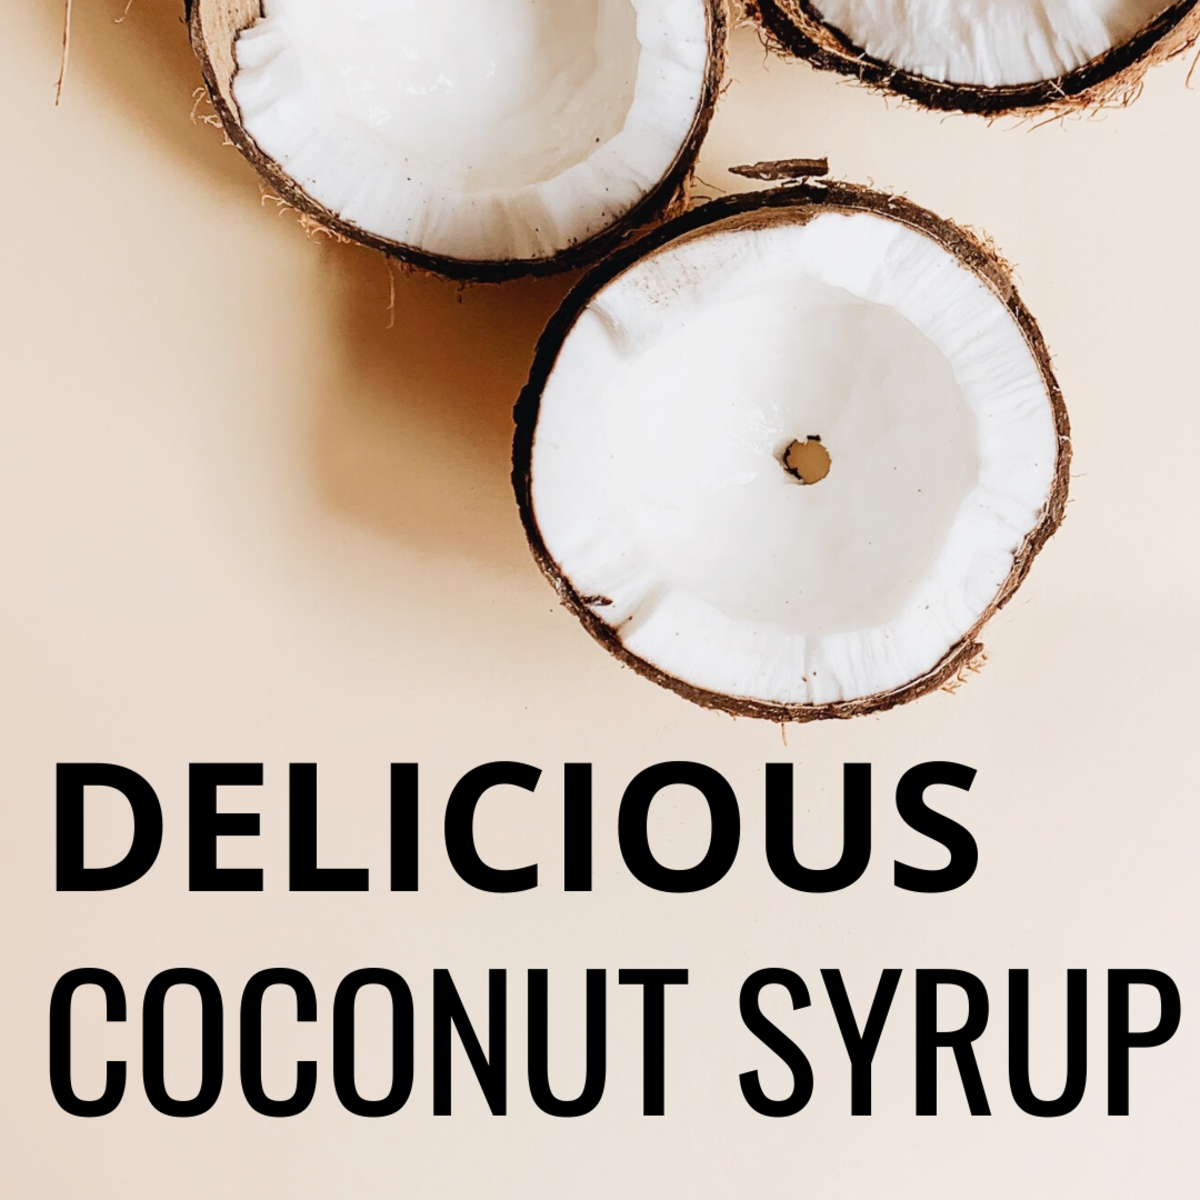 Delicious Coconut Syrup Recipe